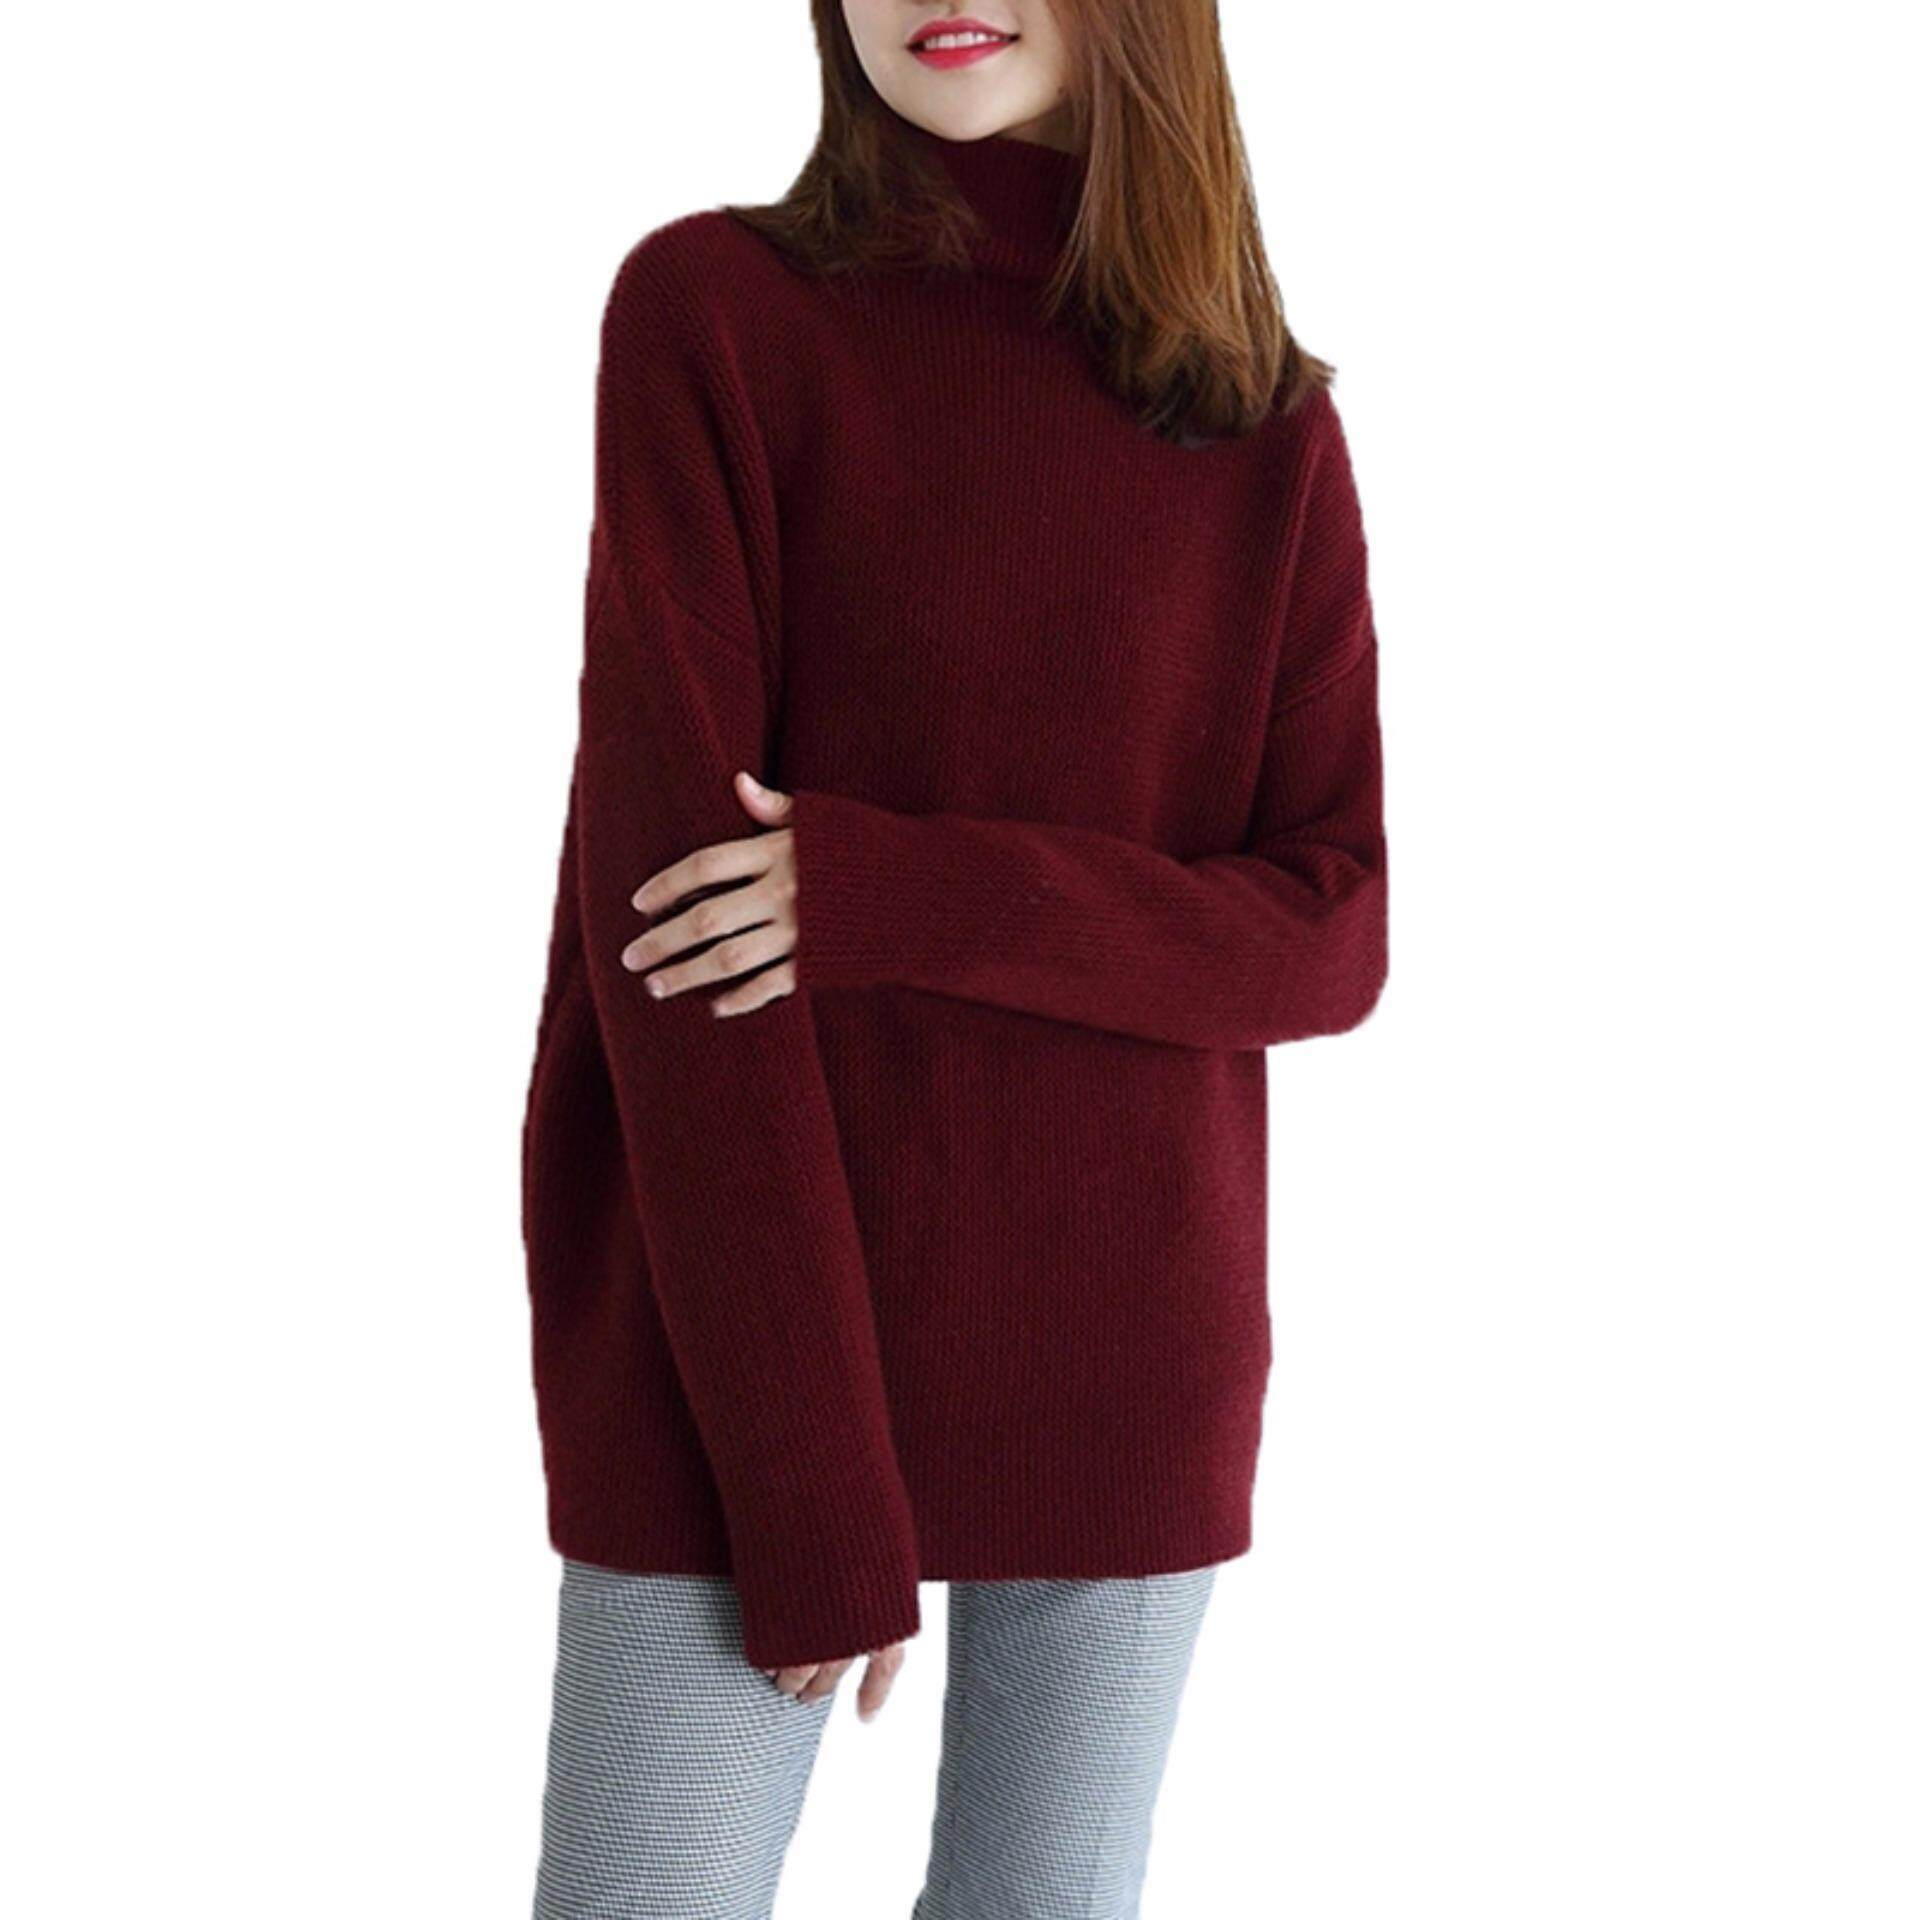 Pinellia Flowers Warm Women 100% Cashmere High-Necked Sweater Long Sleeve Loose Coat Tops By Pinellia Flowers.